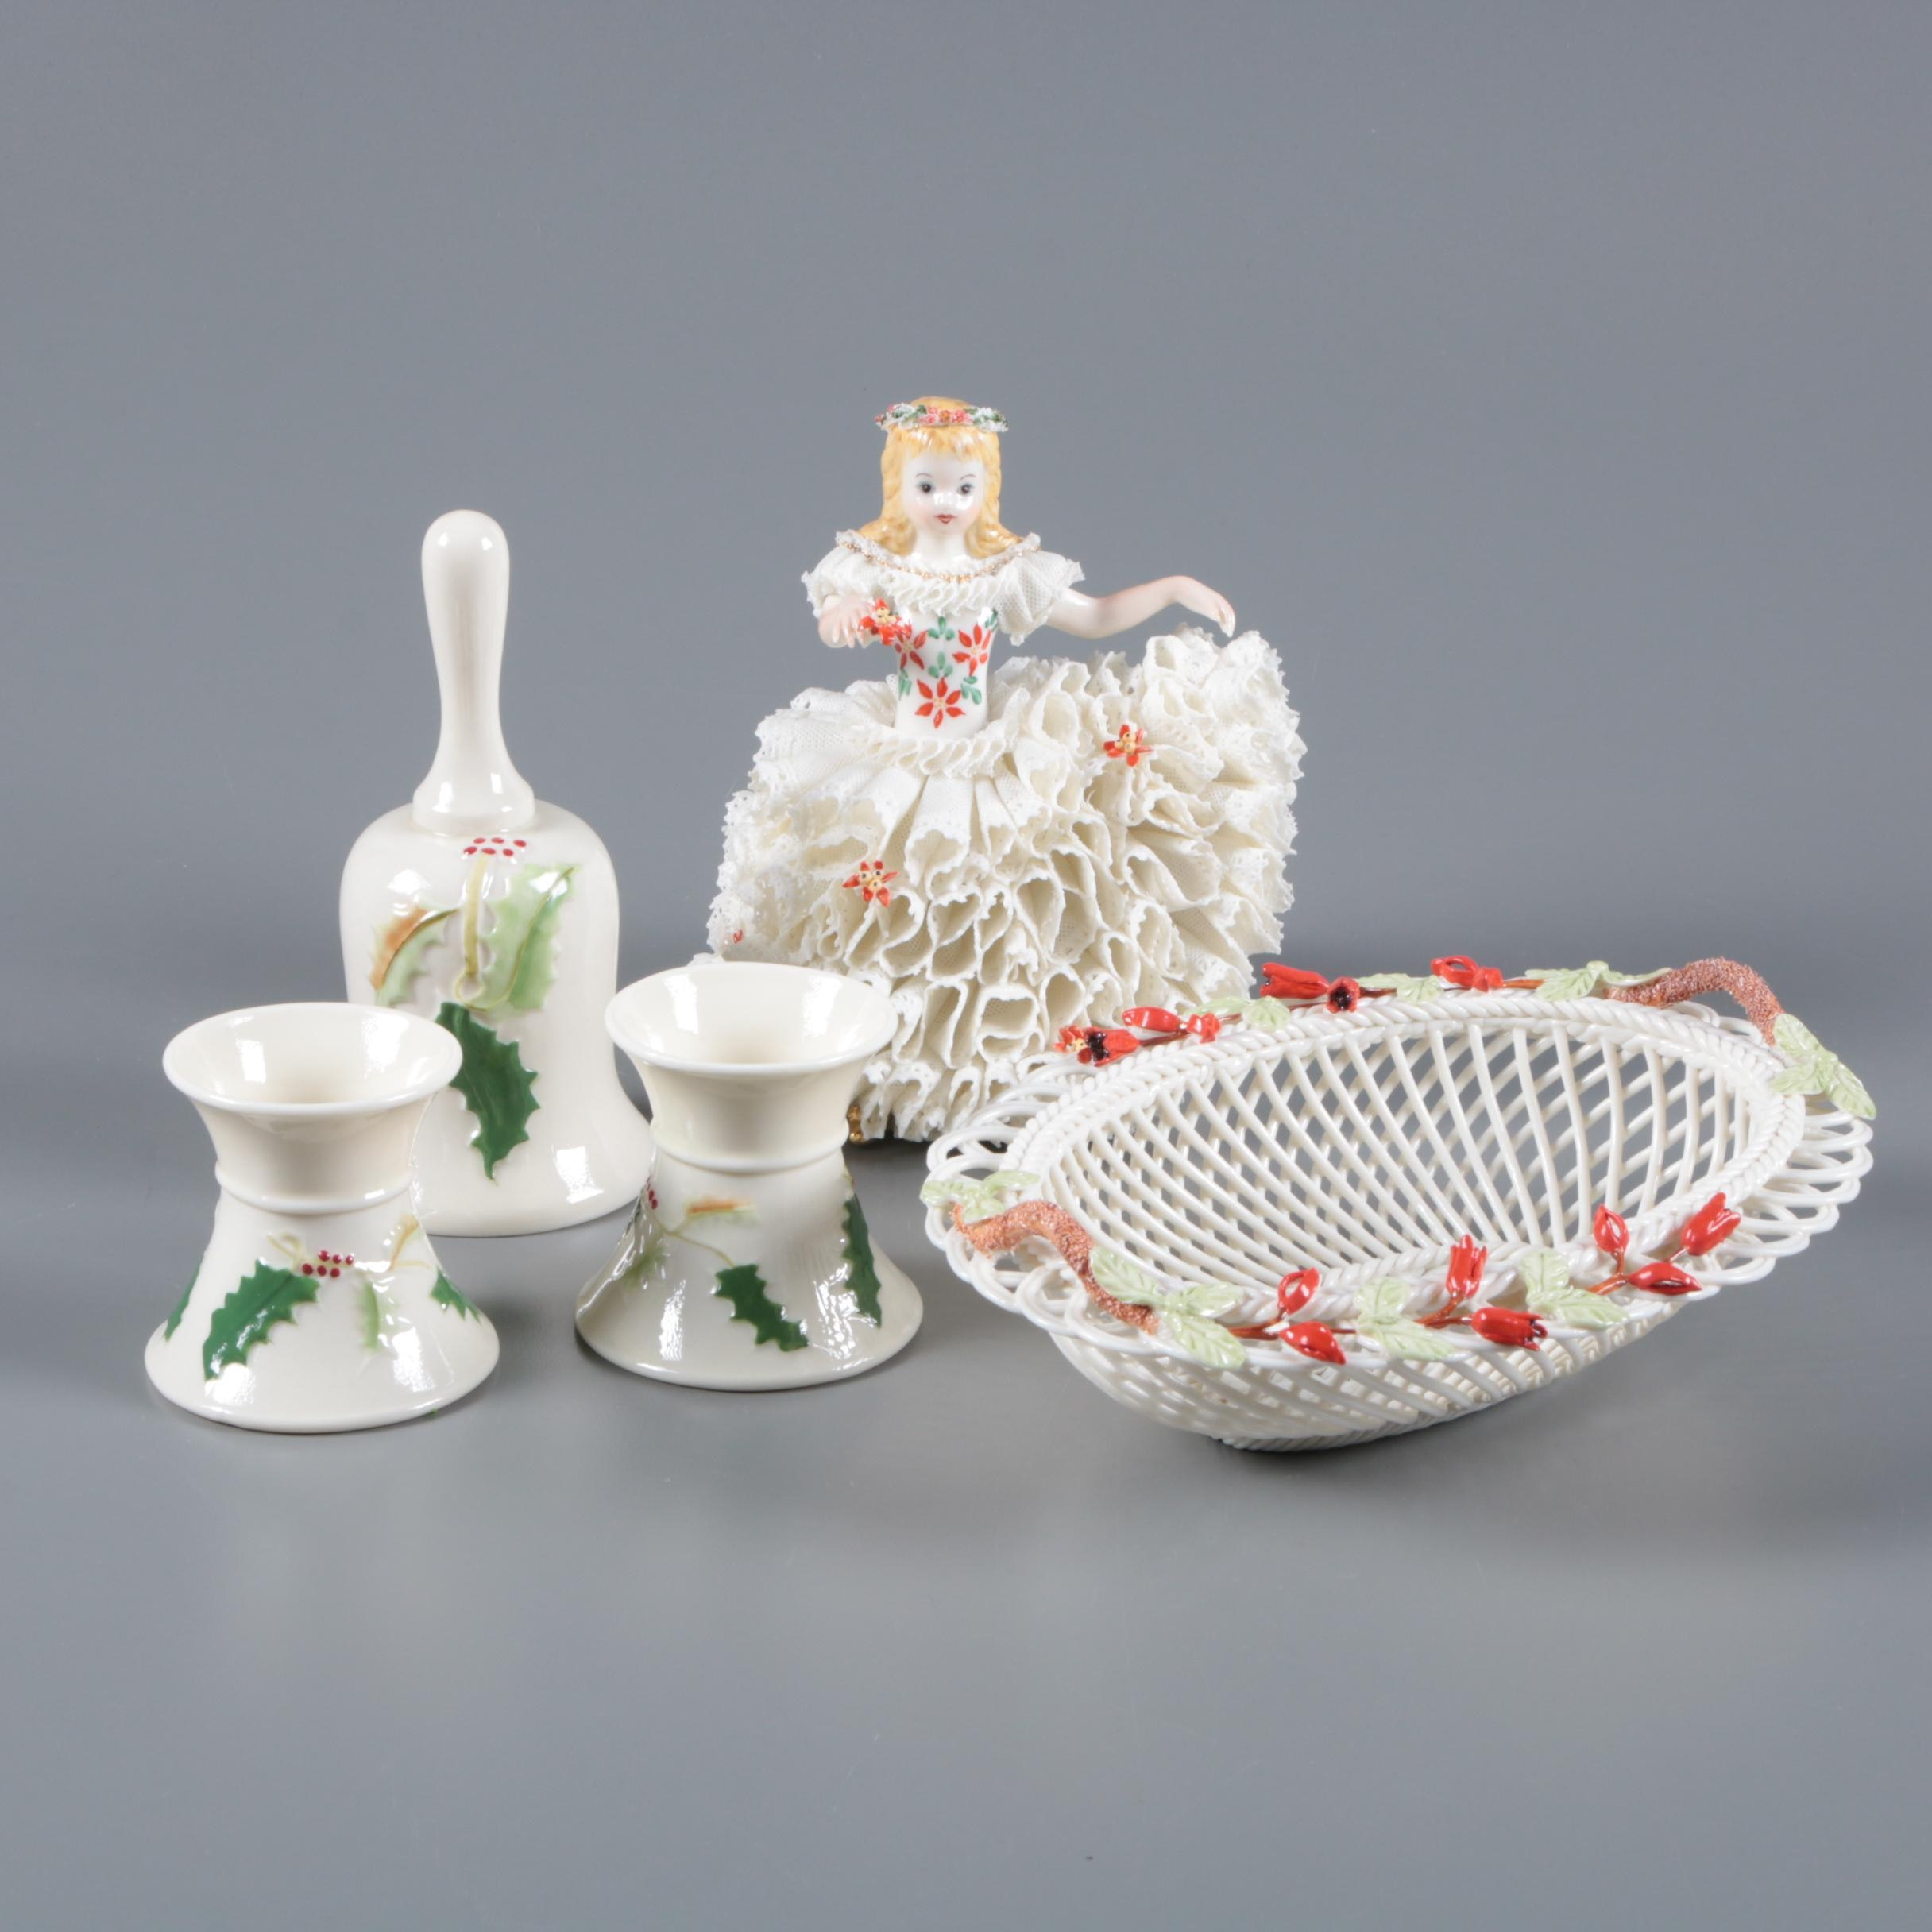 Belleek Porcelain Basket, Candleholders, and Bell with Dresden Lace Figurine